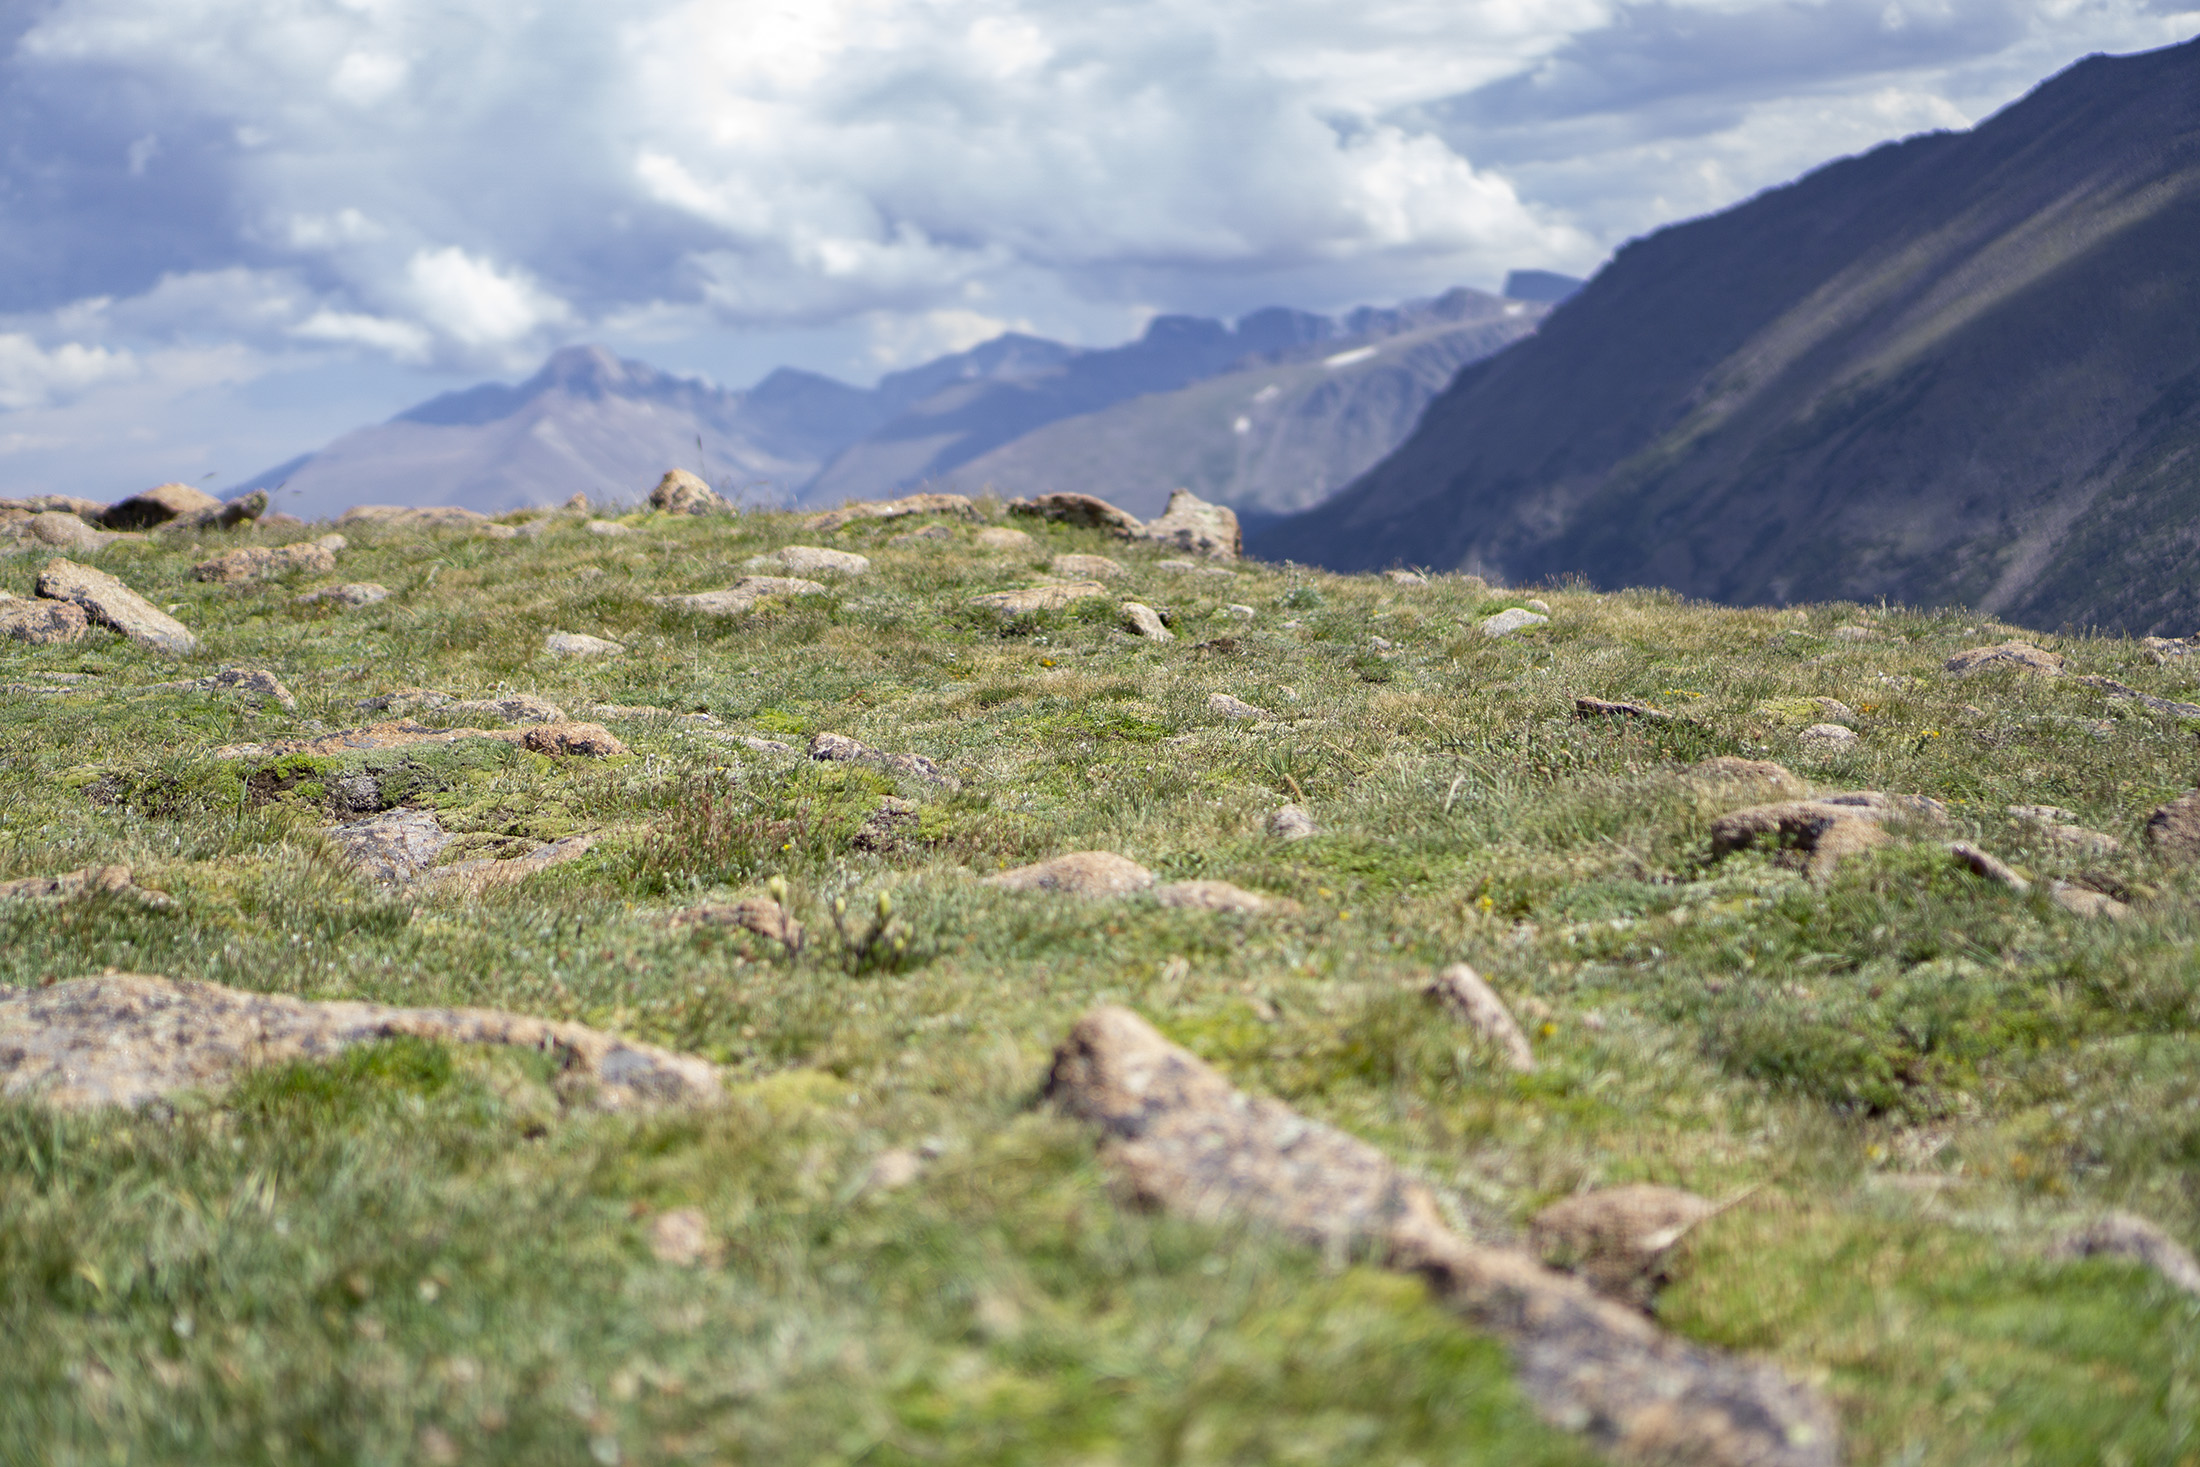 Alpine tundra, Rocky Mountain National Park / Darker than Green